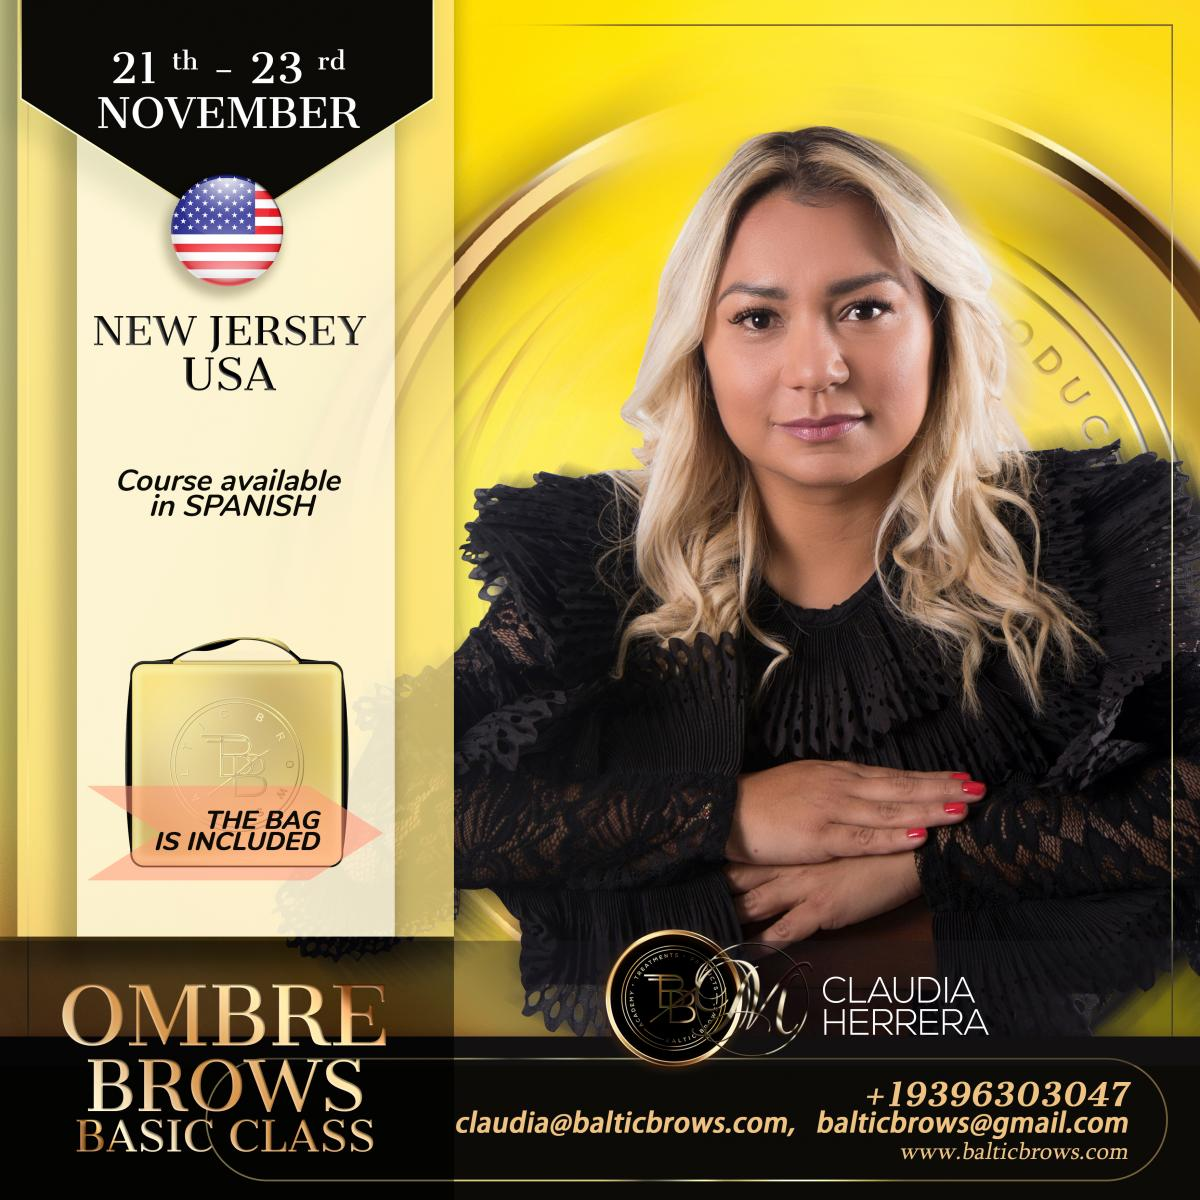 Ombre brows machine basic